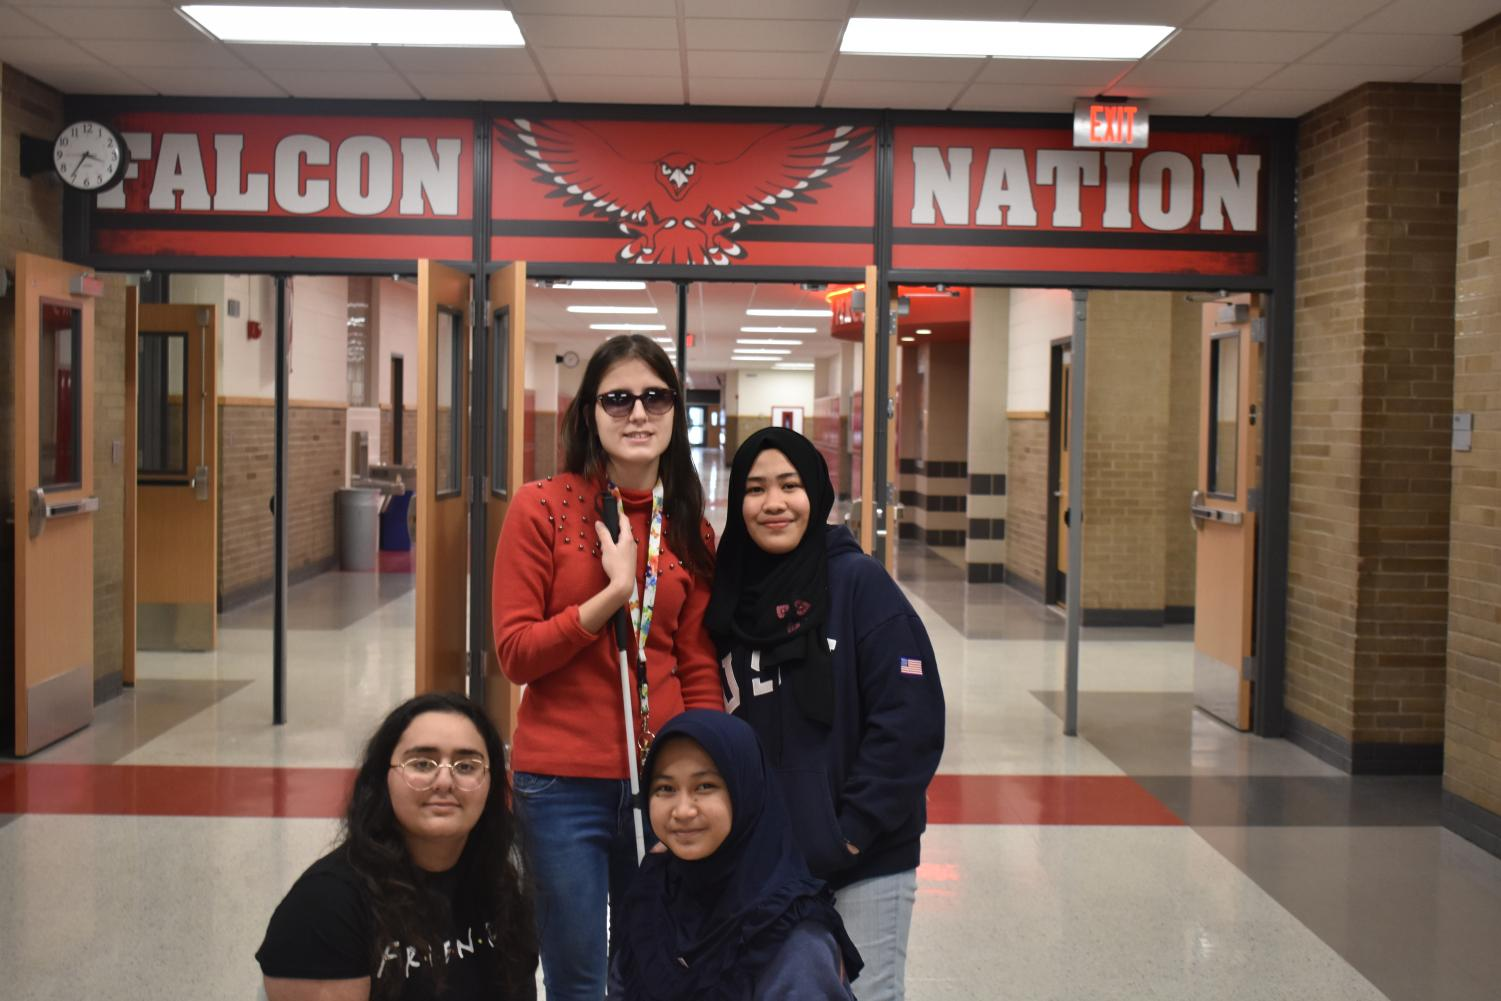 From left: Becca Saad (Lebanon), Andjela Ognjanovic (Serbia), Syafira Adani (Indonesia) and Farnaiza Gulam (Philippines) pose to show their Falcon spirit. These foreign exchange students are spending an academic year at Davenport West to experience what American high school life is like.